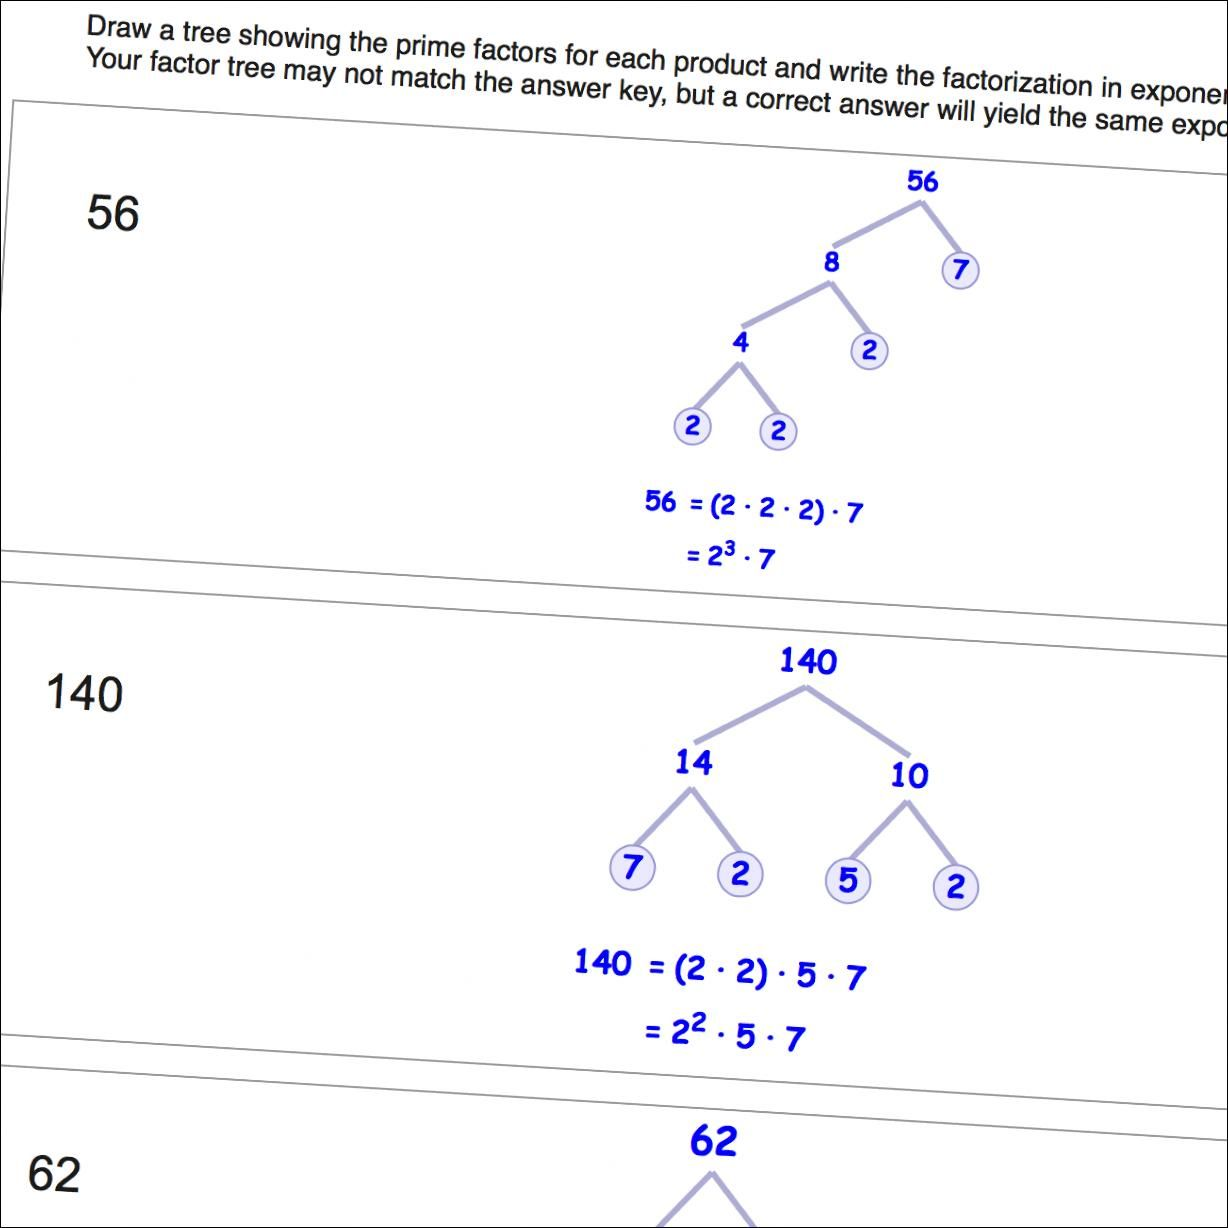 Worksheets Factorization Worksheets the prime factorization math worksheets are not only great skill builders for algebra they can help teach basic multiplication sk